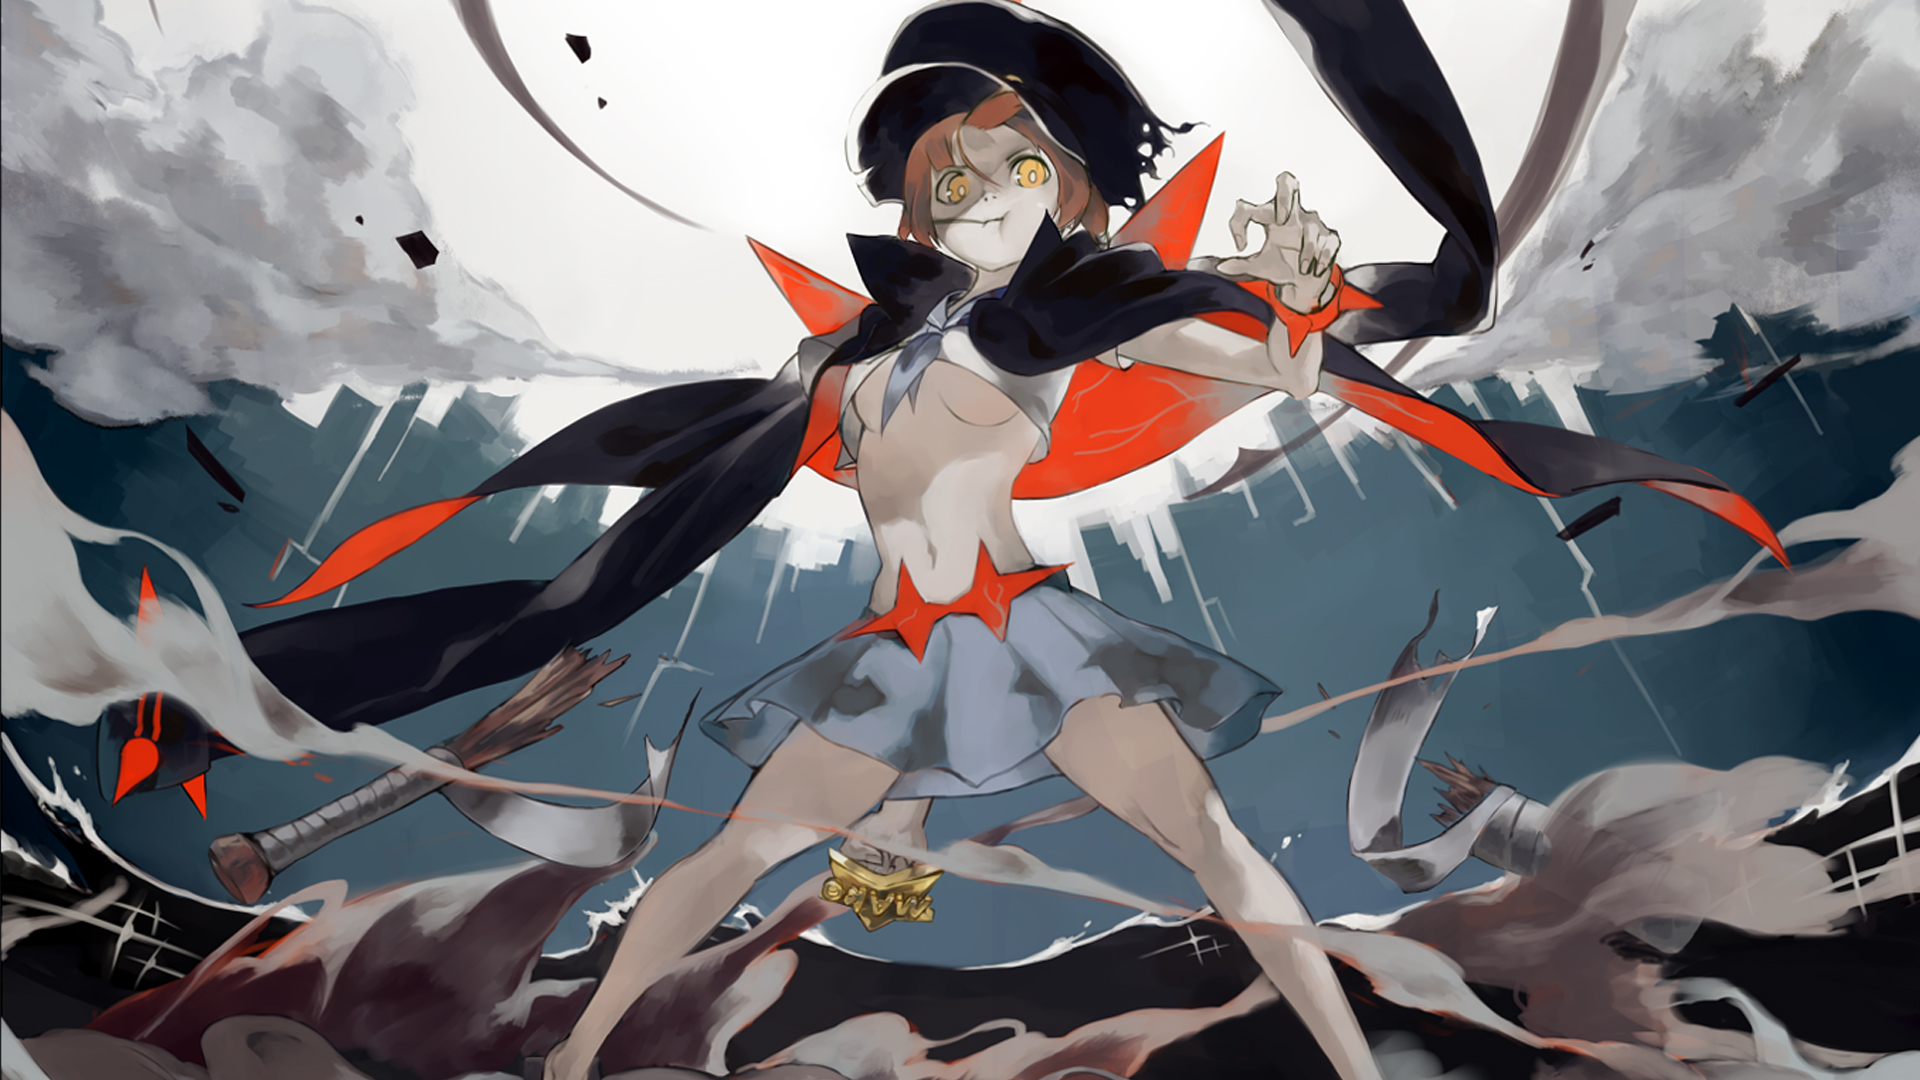 50] Kill La Kill Mako Wallpaper on WallpaperSafari 1920x1080